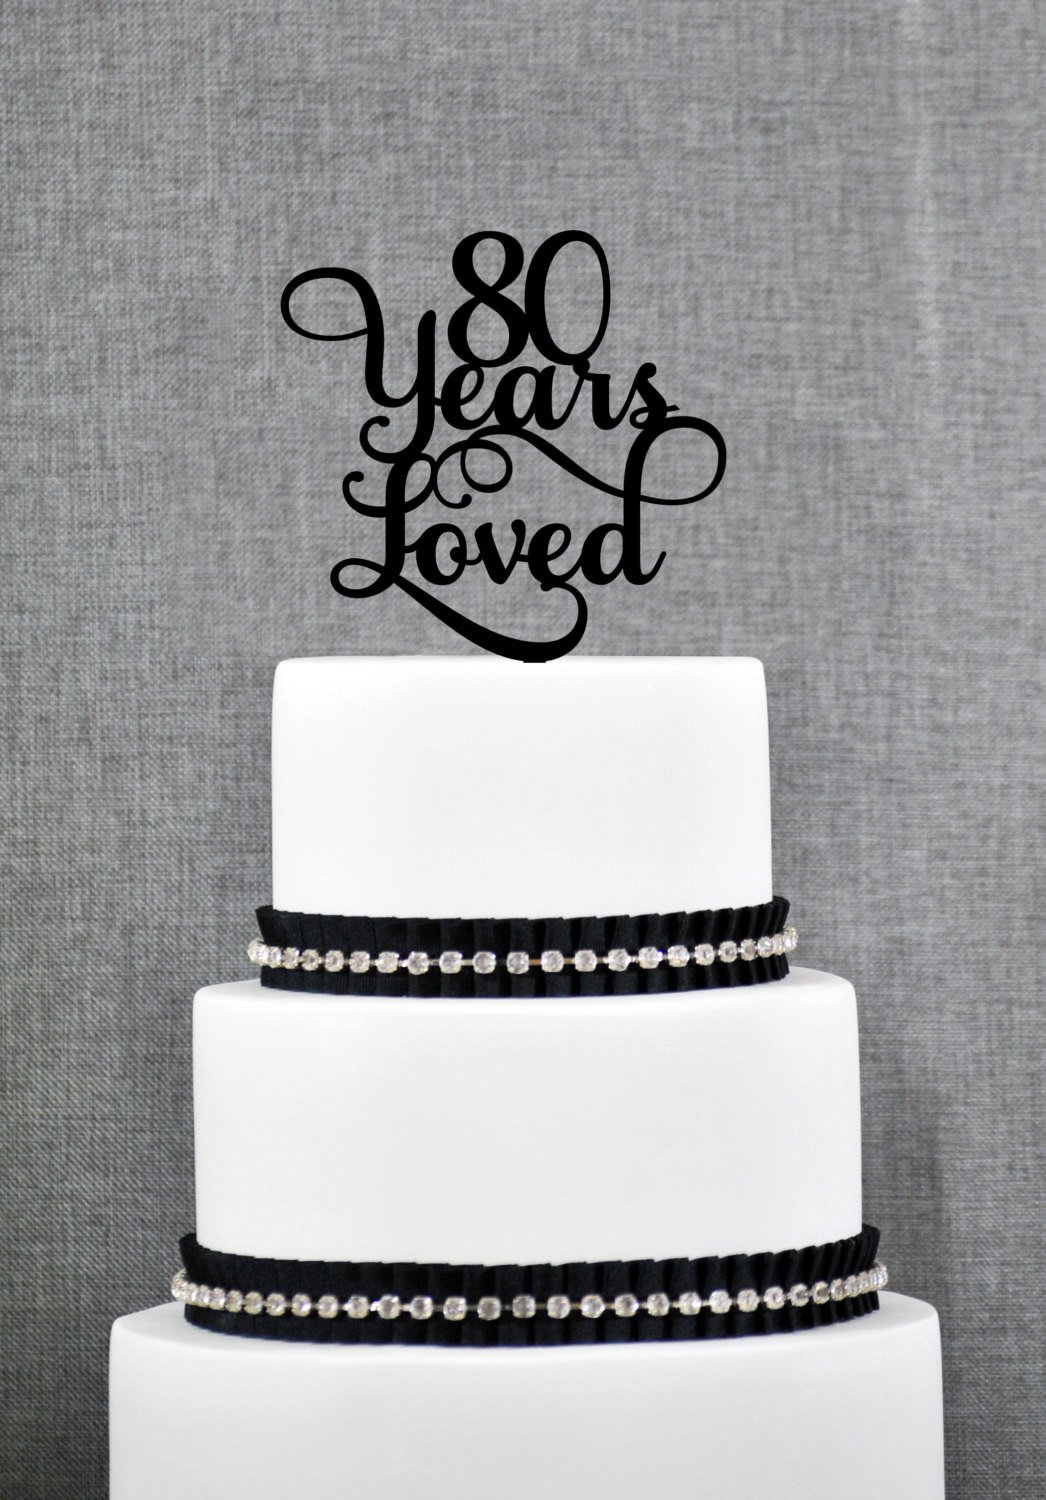 Astonishing 80 Years Loved Birthday Cake Topper Elegant 80Th Anniversary Cake Funny Birthday Cards Online Hendilapandamsfinfo